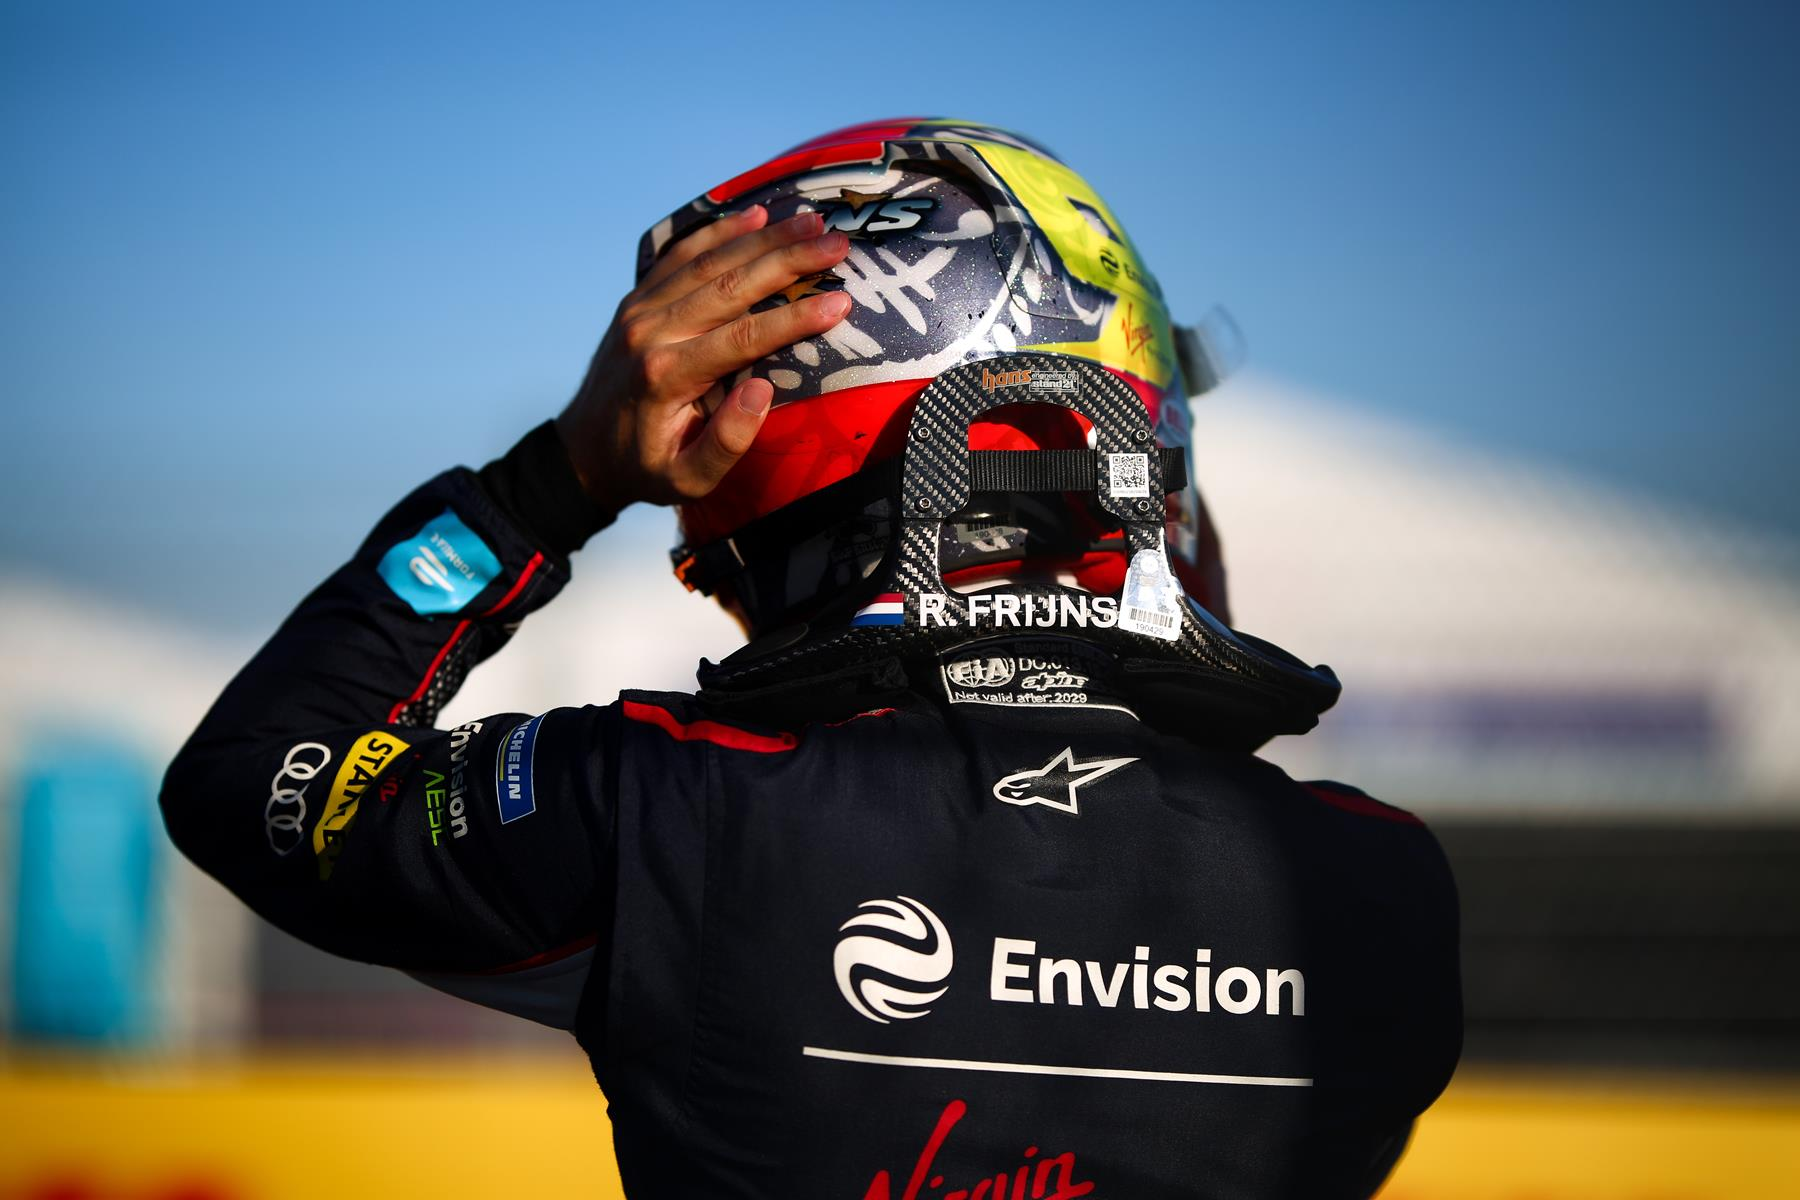 Robin-Frijns-Helmet-from-behind